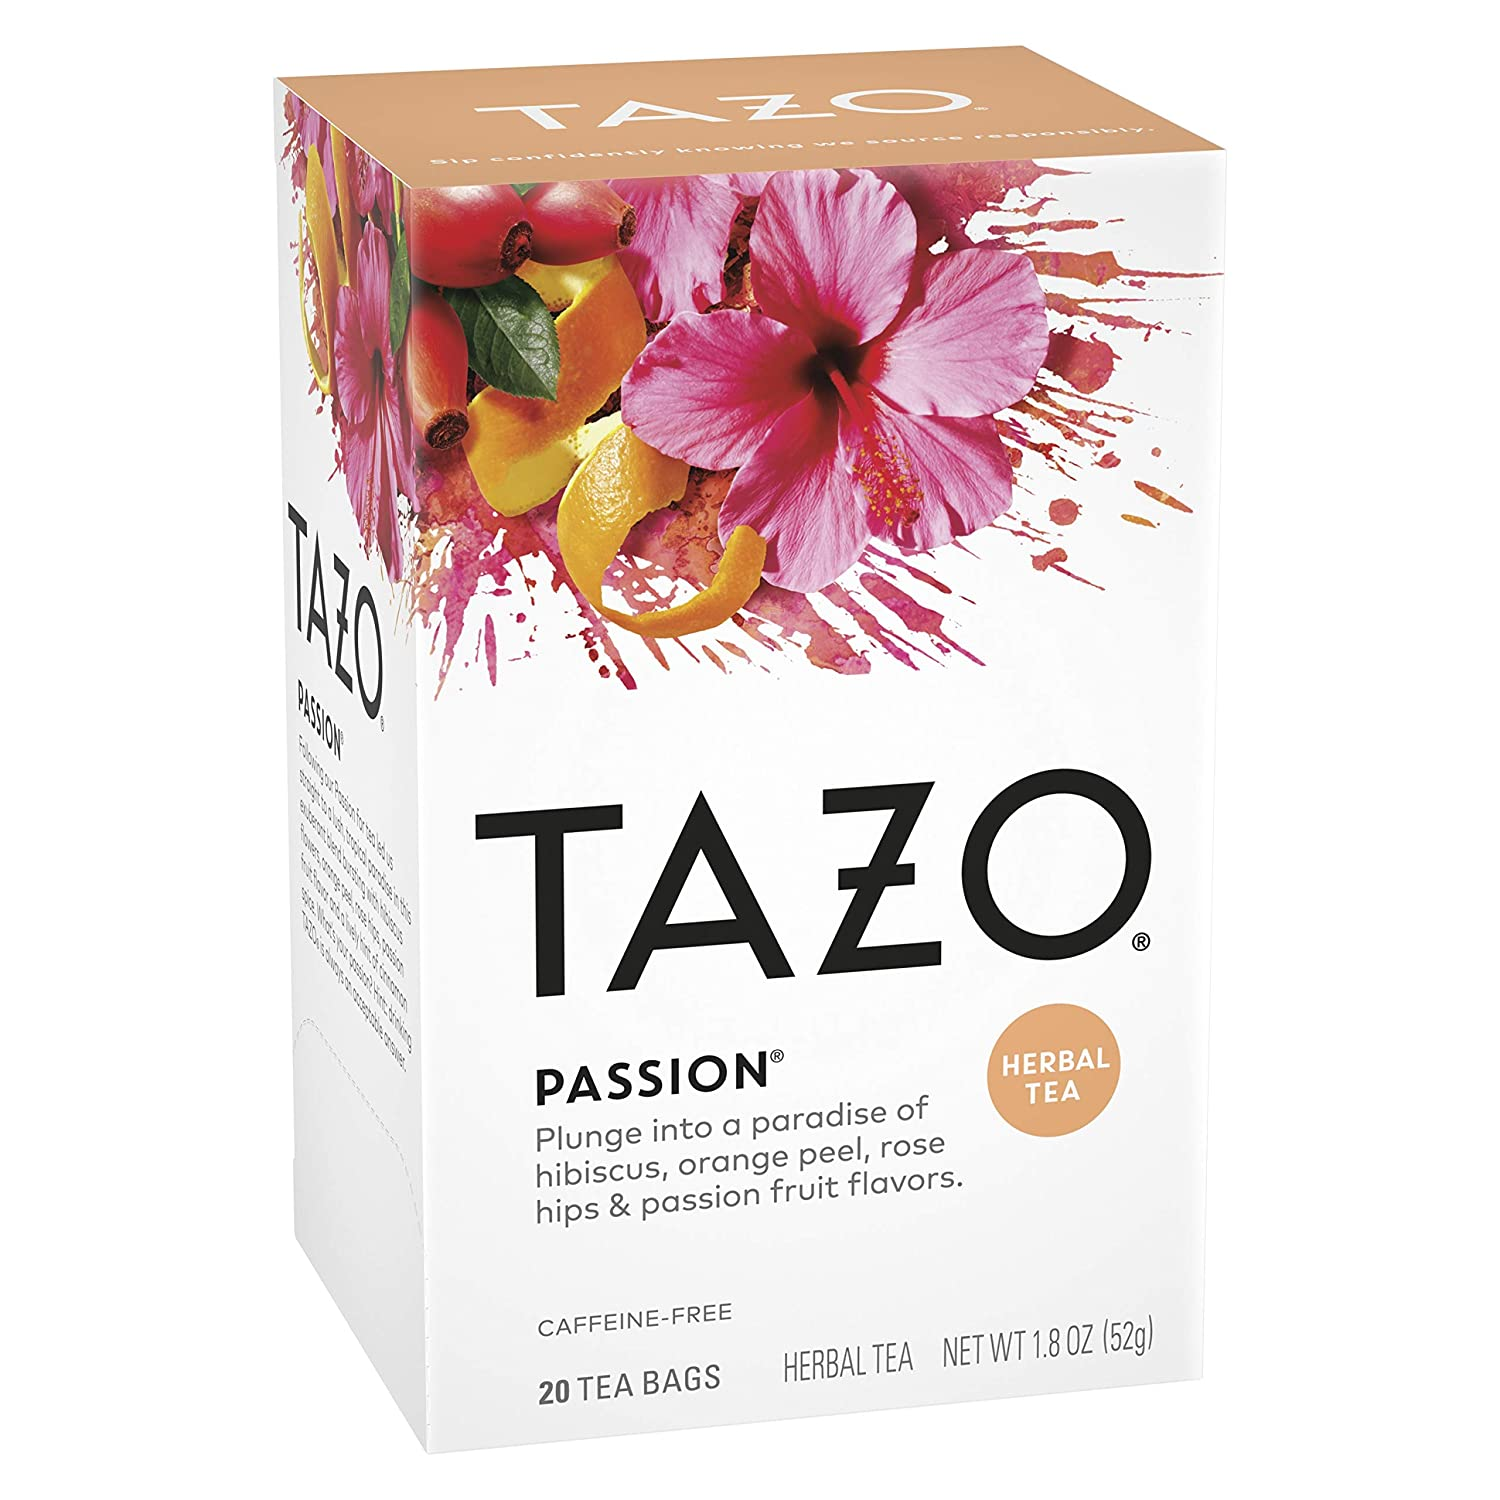 Amazon.com : Tazo Passion Tea, 20 Tea Bags : Herbal Teas : Grocery &  Gourmet Food